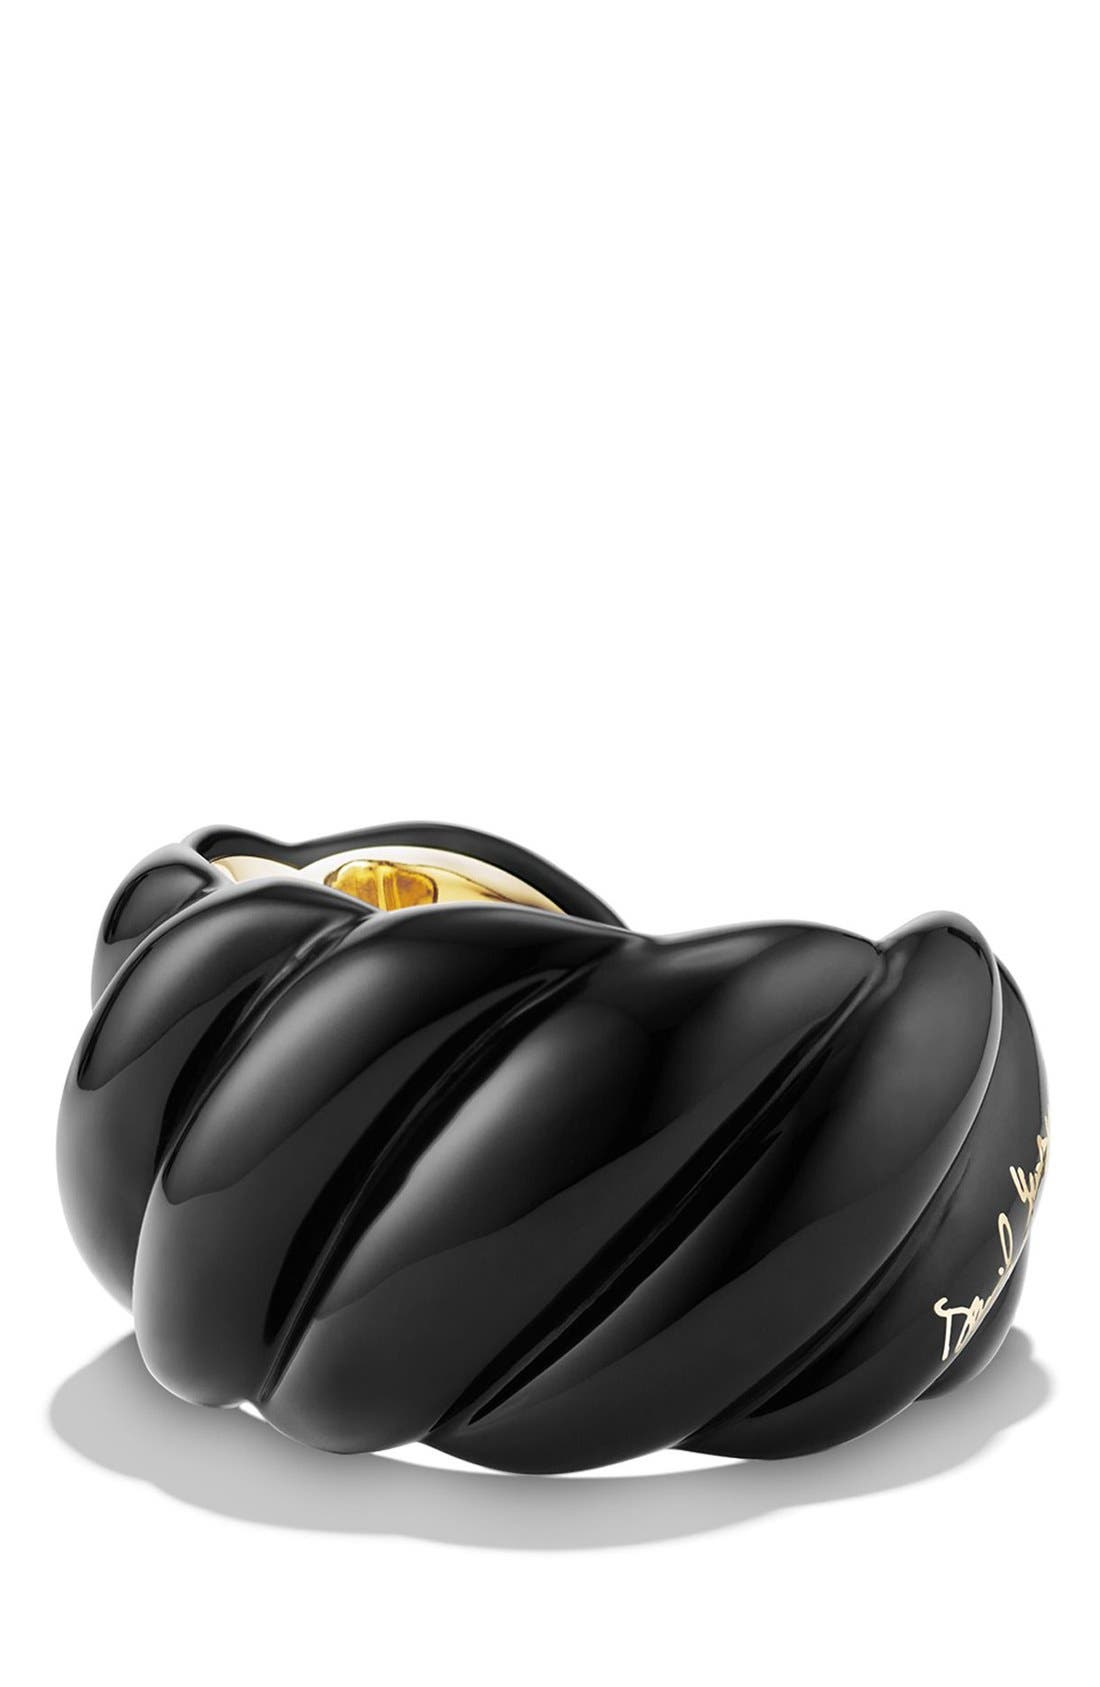 'Sculpted Cable' Resin Cuff Bracelet with 18k Gold,                             Main thumbnail 1, color,                             YELLOW GOLD/ BLACK